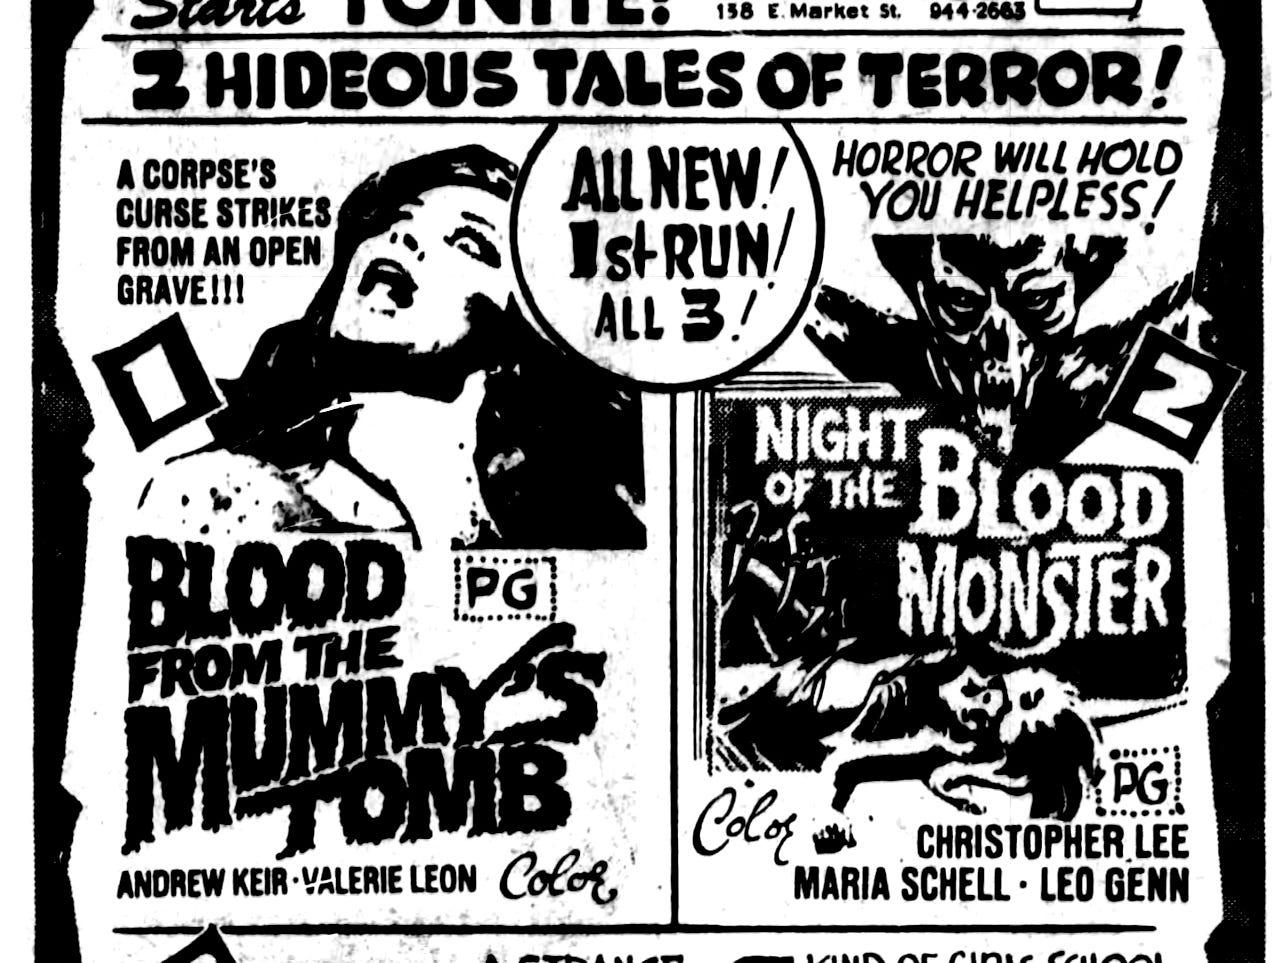 """""""Blood from the Mummy's tomb,"""" and """"Night of the Blood Monster,"""" Wednesday, May 31, 1972"""